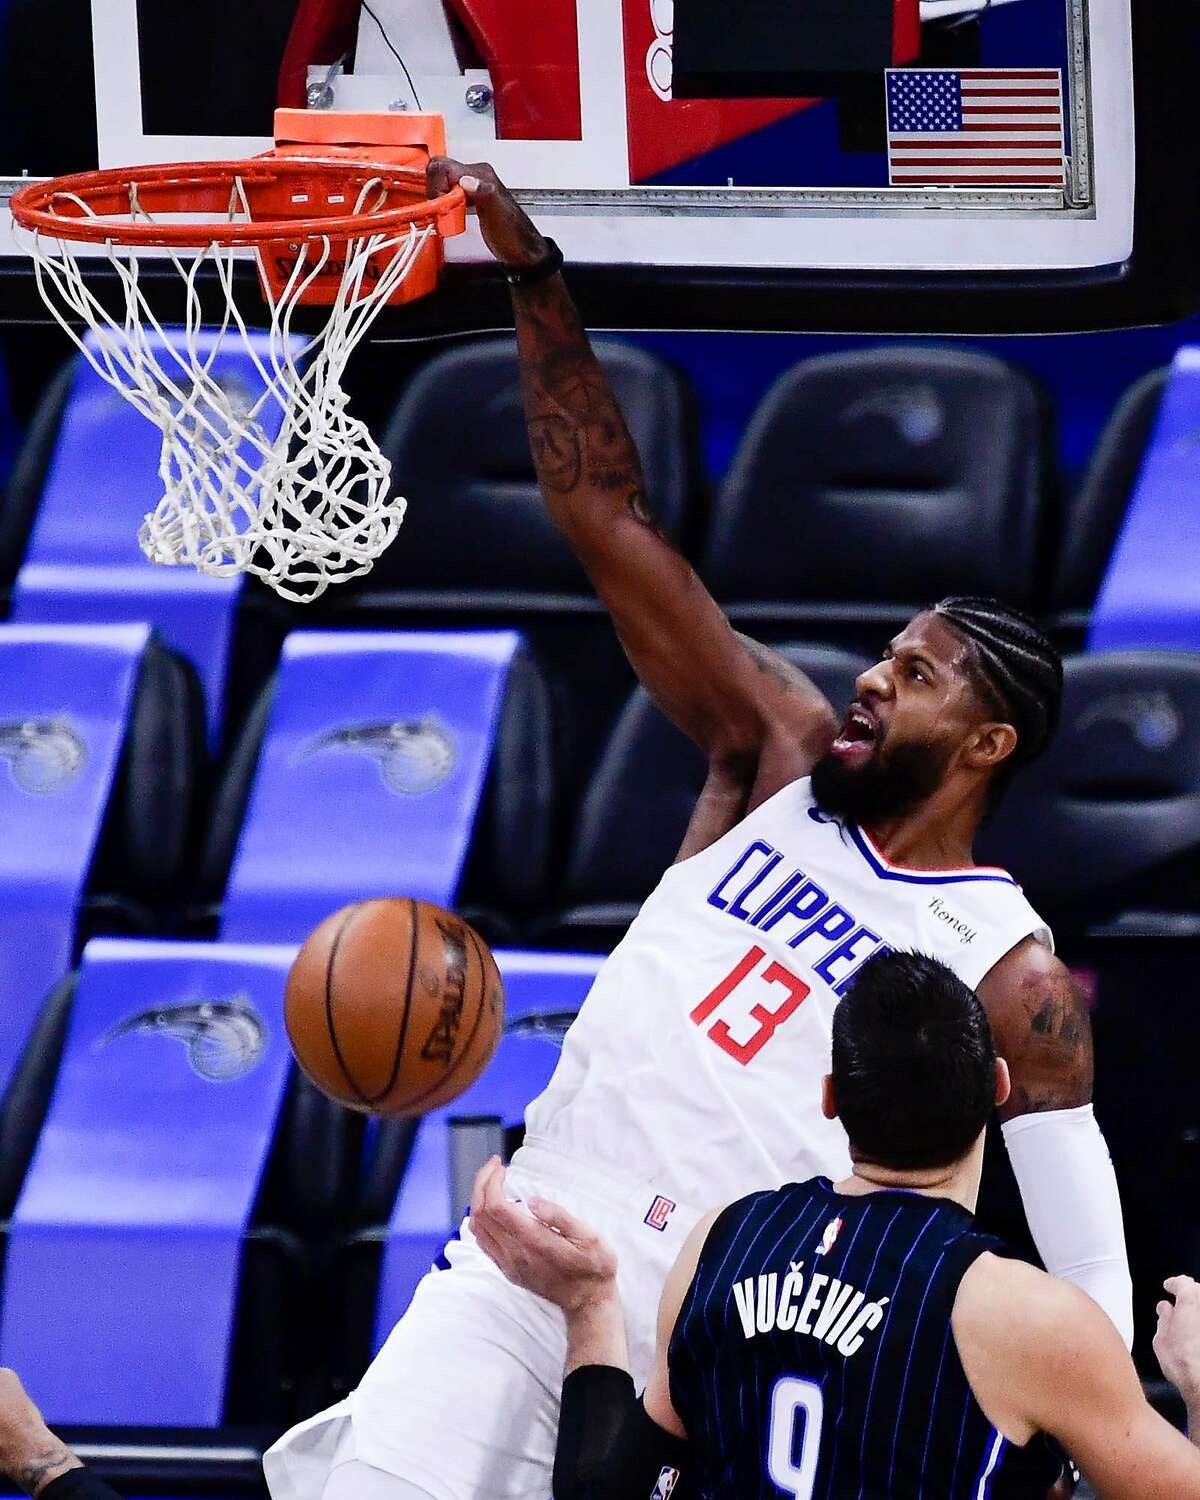 Paul George finished with 26 points, nine rebounds and five assists in the Clippers' rout of the Magic.